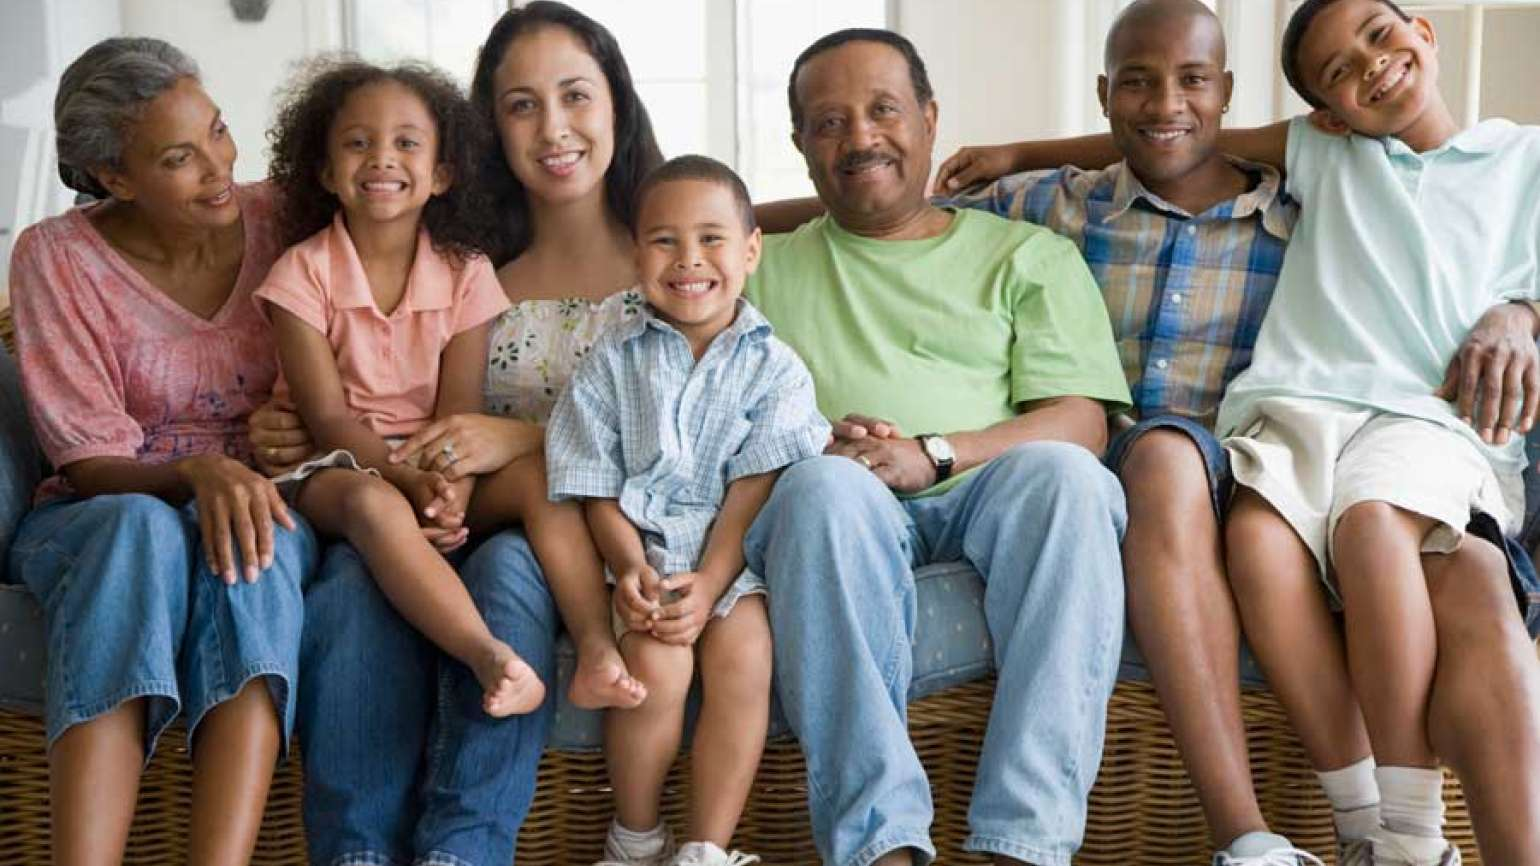 Guideposts: Grandparents, parents and kids all gather to smile for the camera.